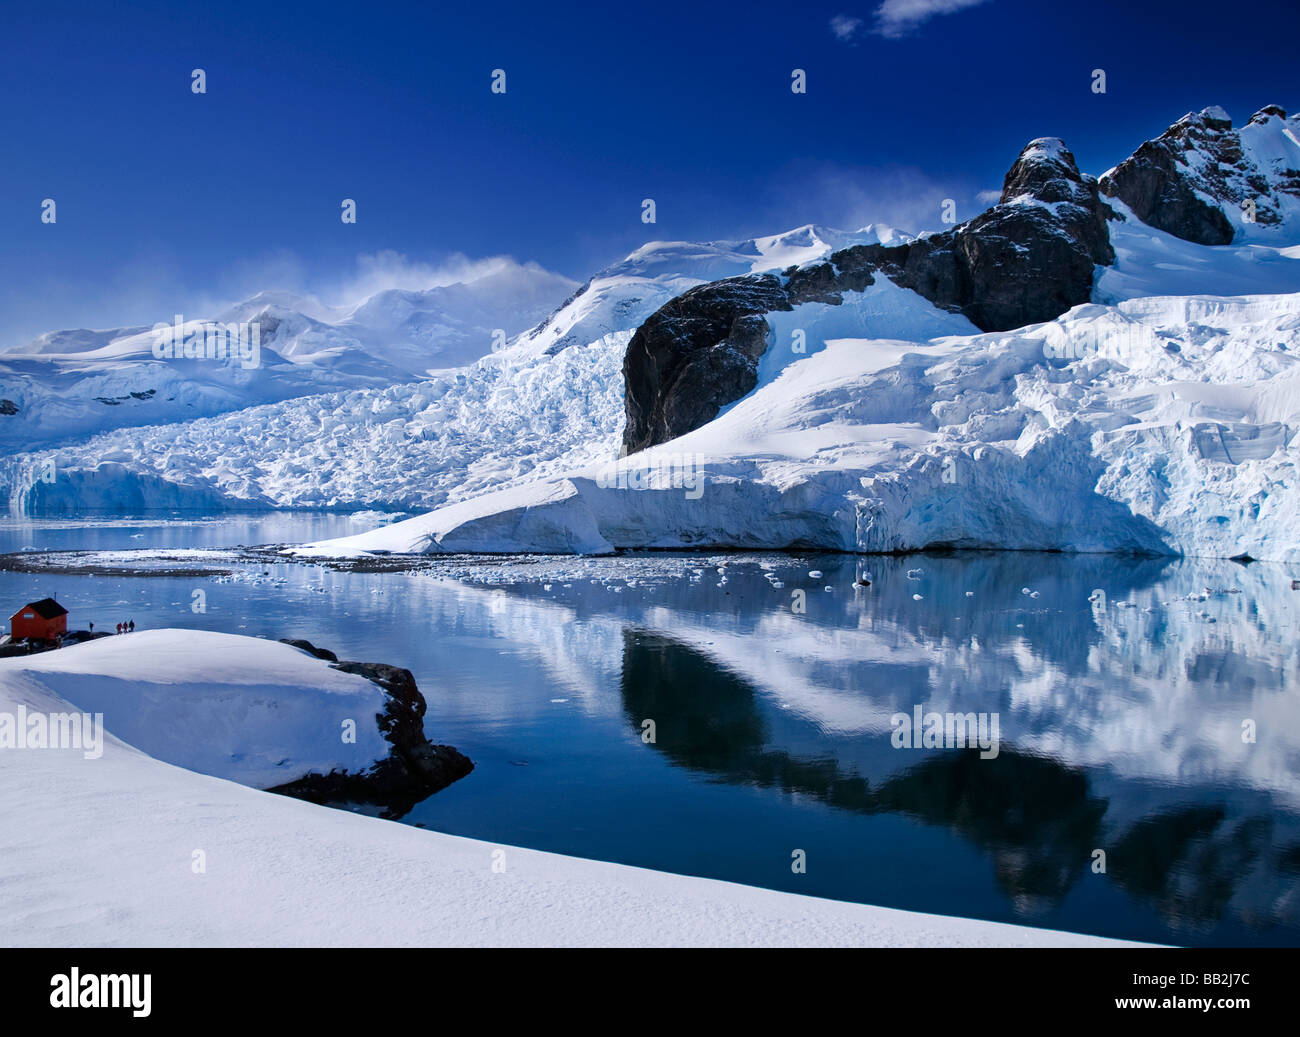 The spectacular glaciers around Paradise Bay in Antarctica - Stock Image